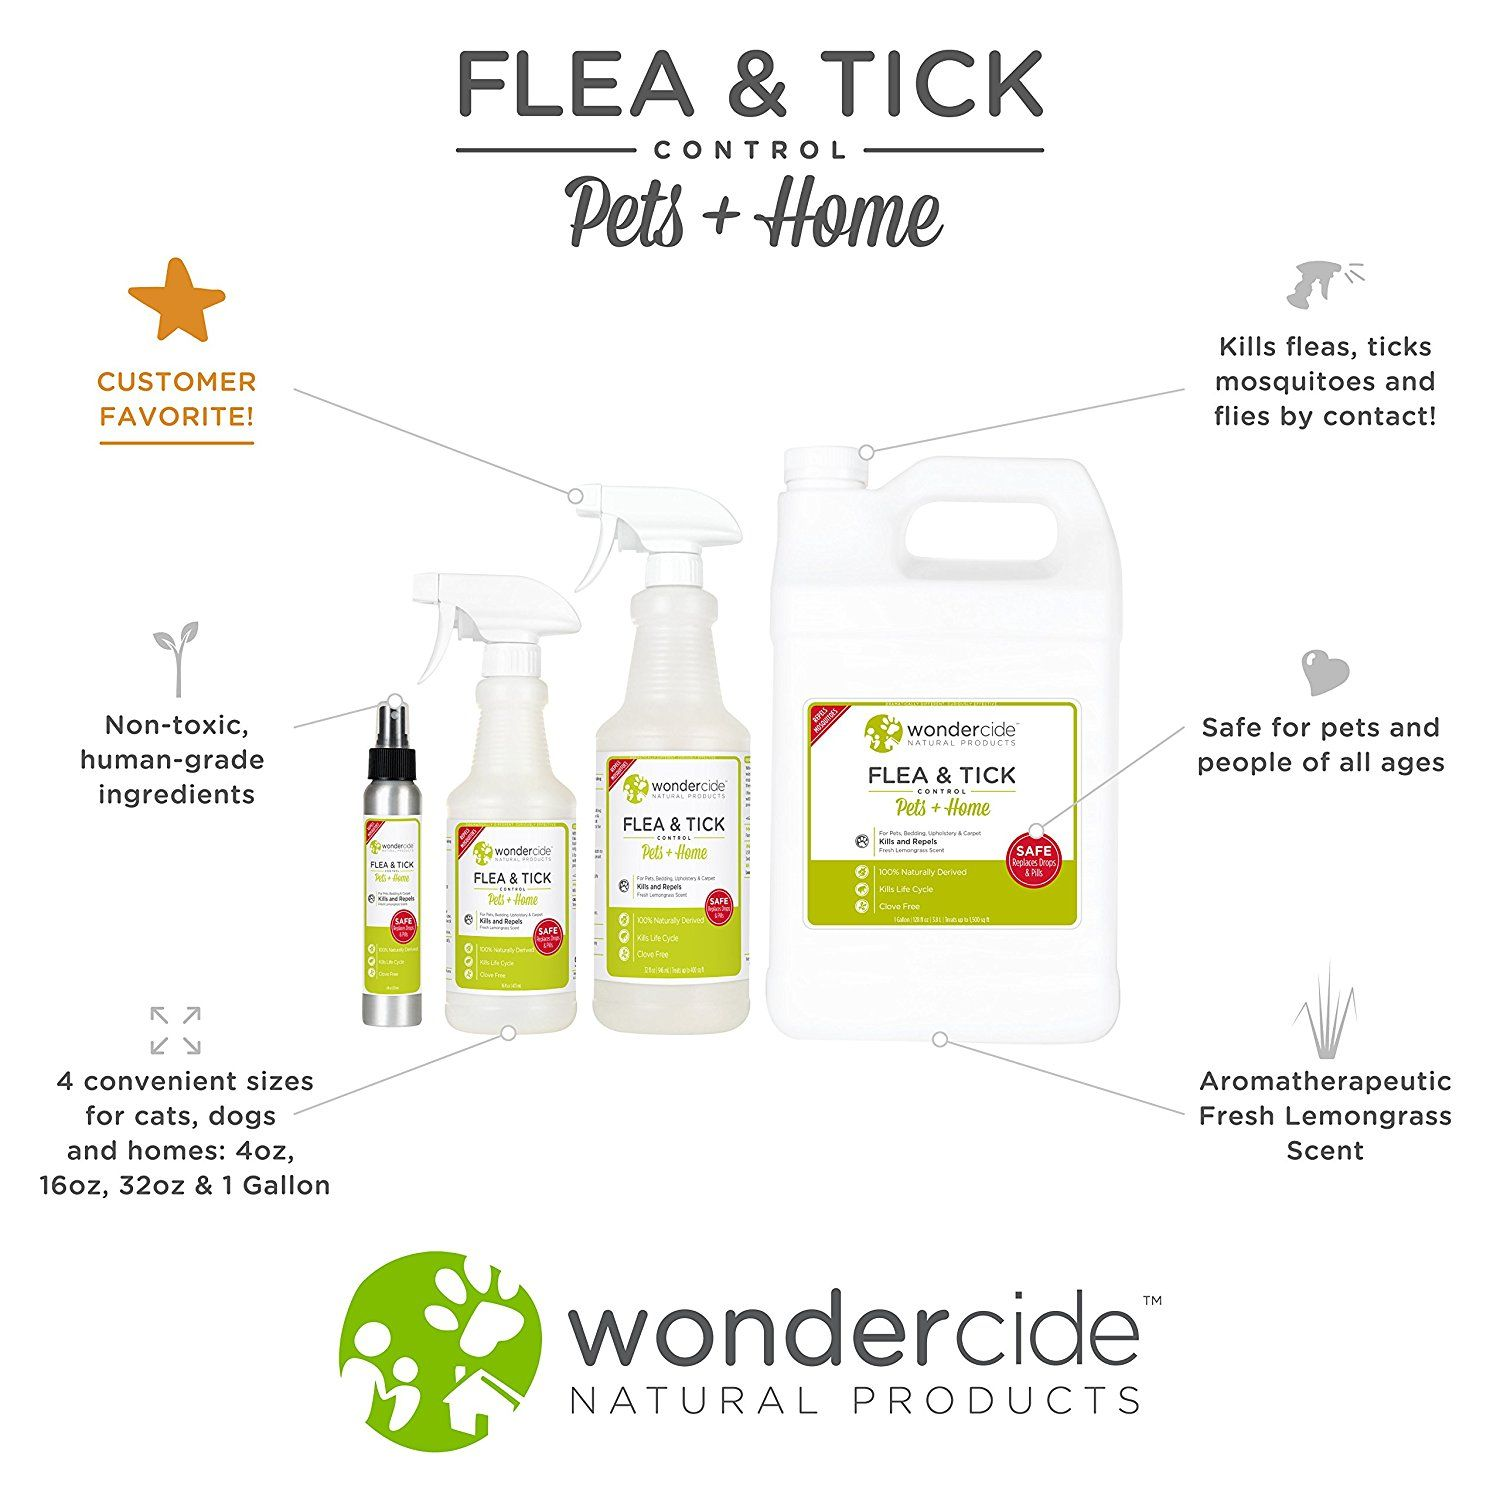 Pin by Wondercide on Product Images | Cat fleas, Tick ...